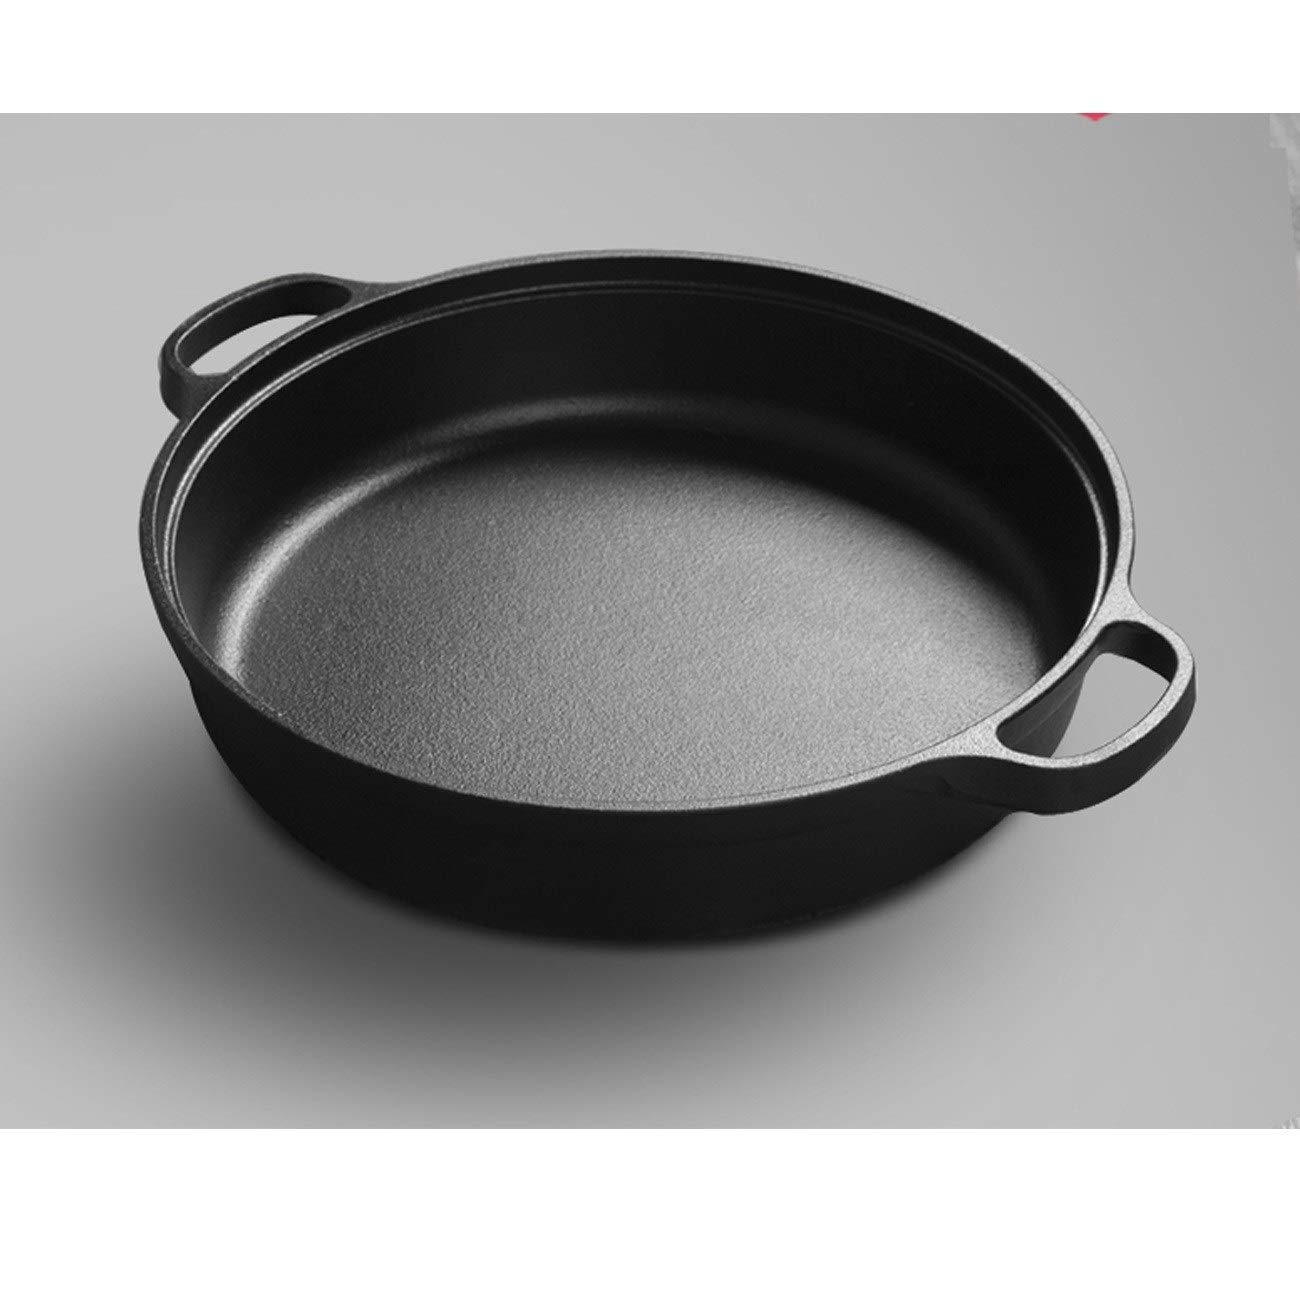 TONGBOSHI Double ear pan cast iron frying pan thick pancake pot no coating thickening cast iron pot non-stick household gas universal product (Color : Black, Size : 25cm) by TONGBOSHI (Image #2)